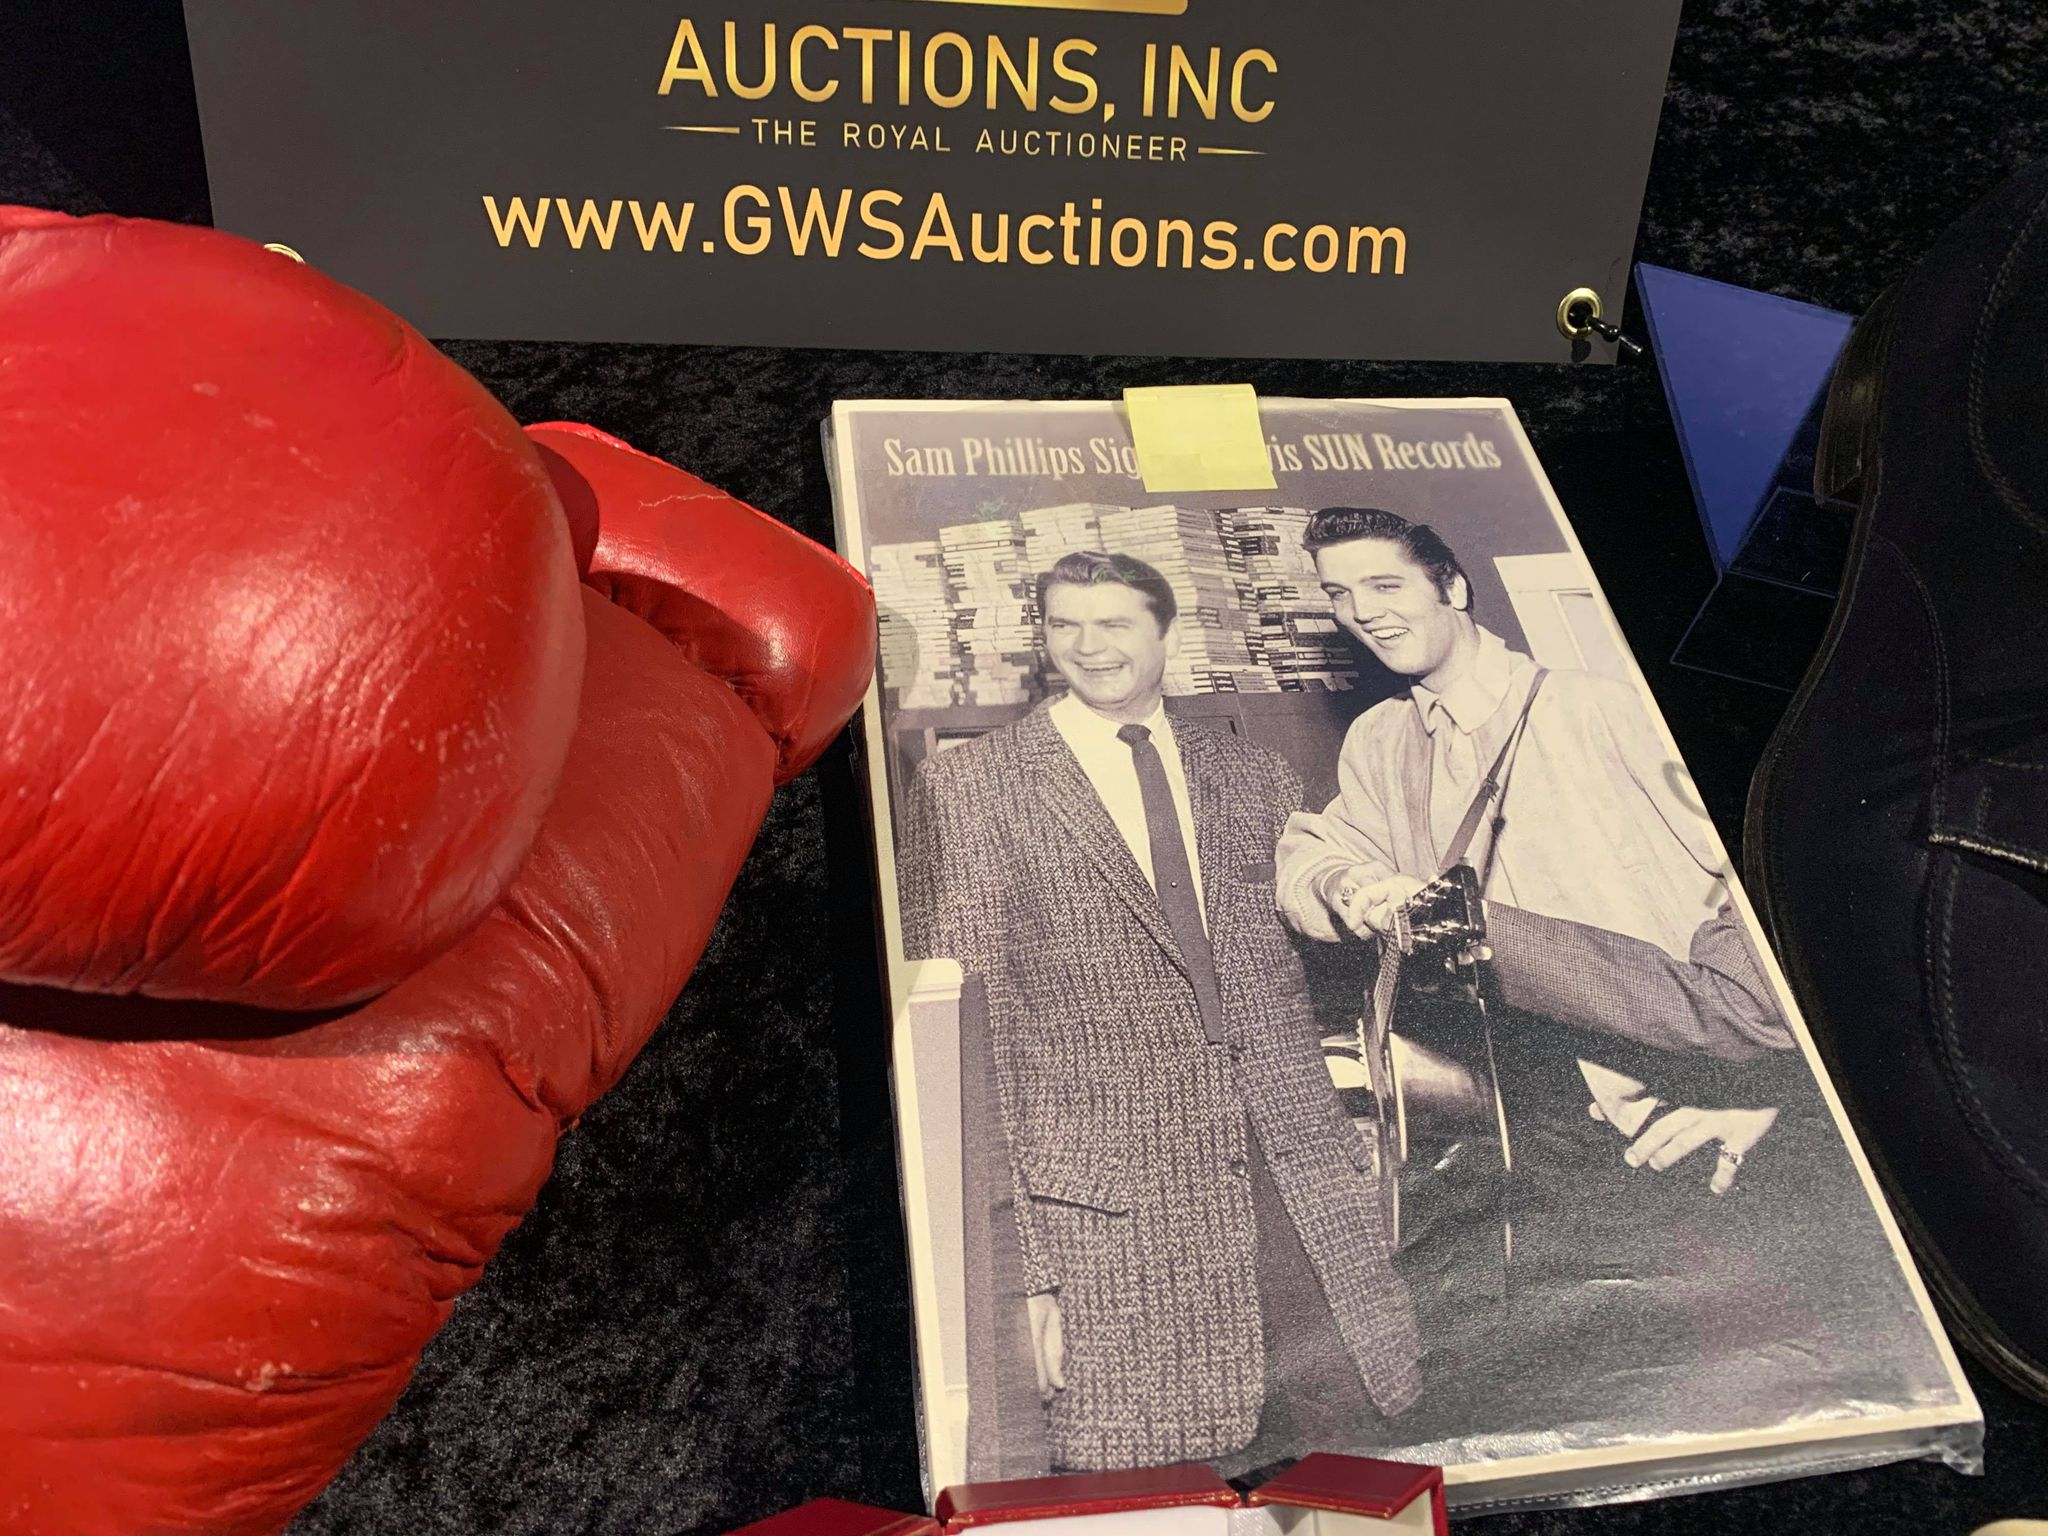 Kruse GWS Auctions